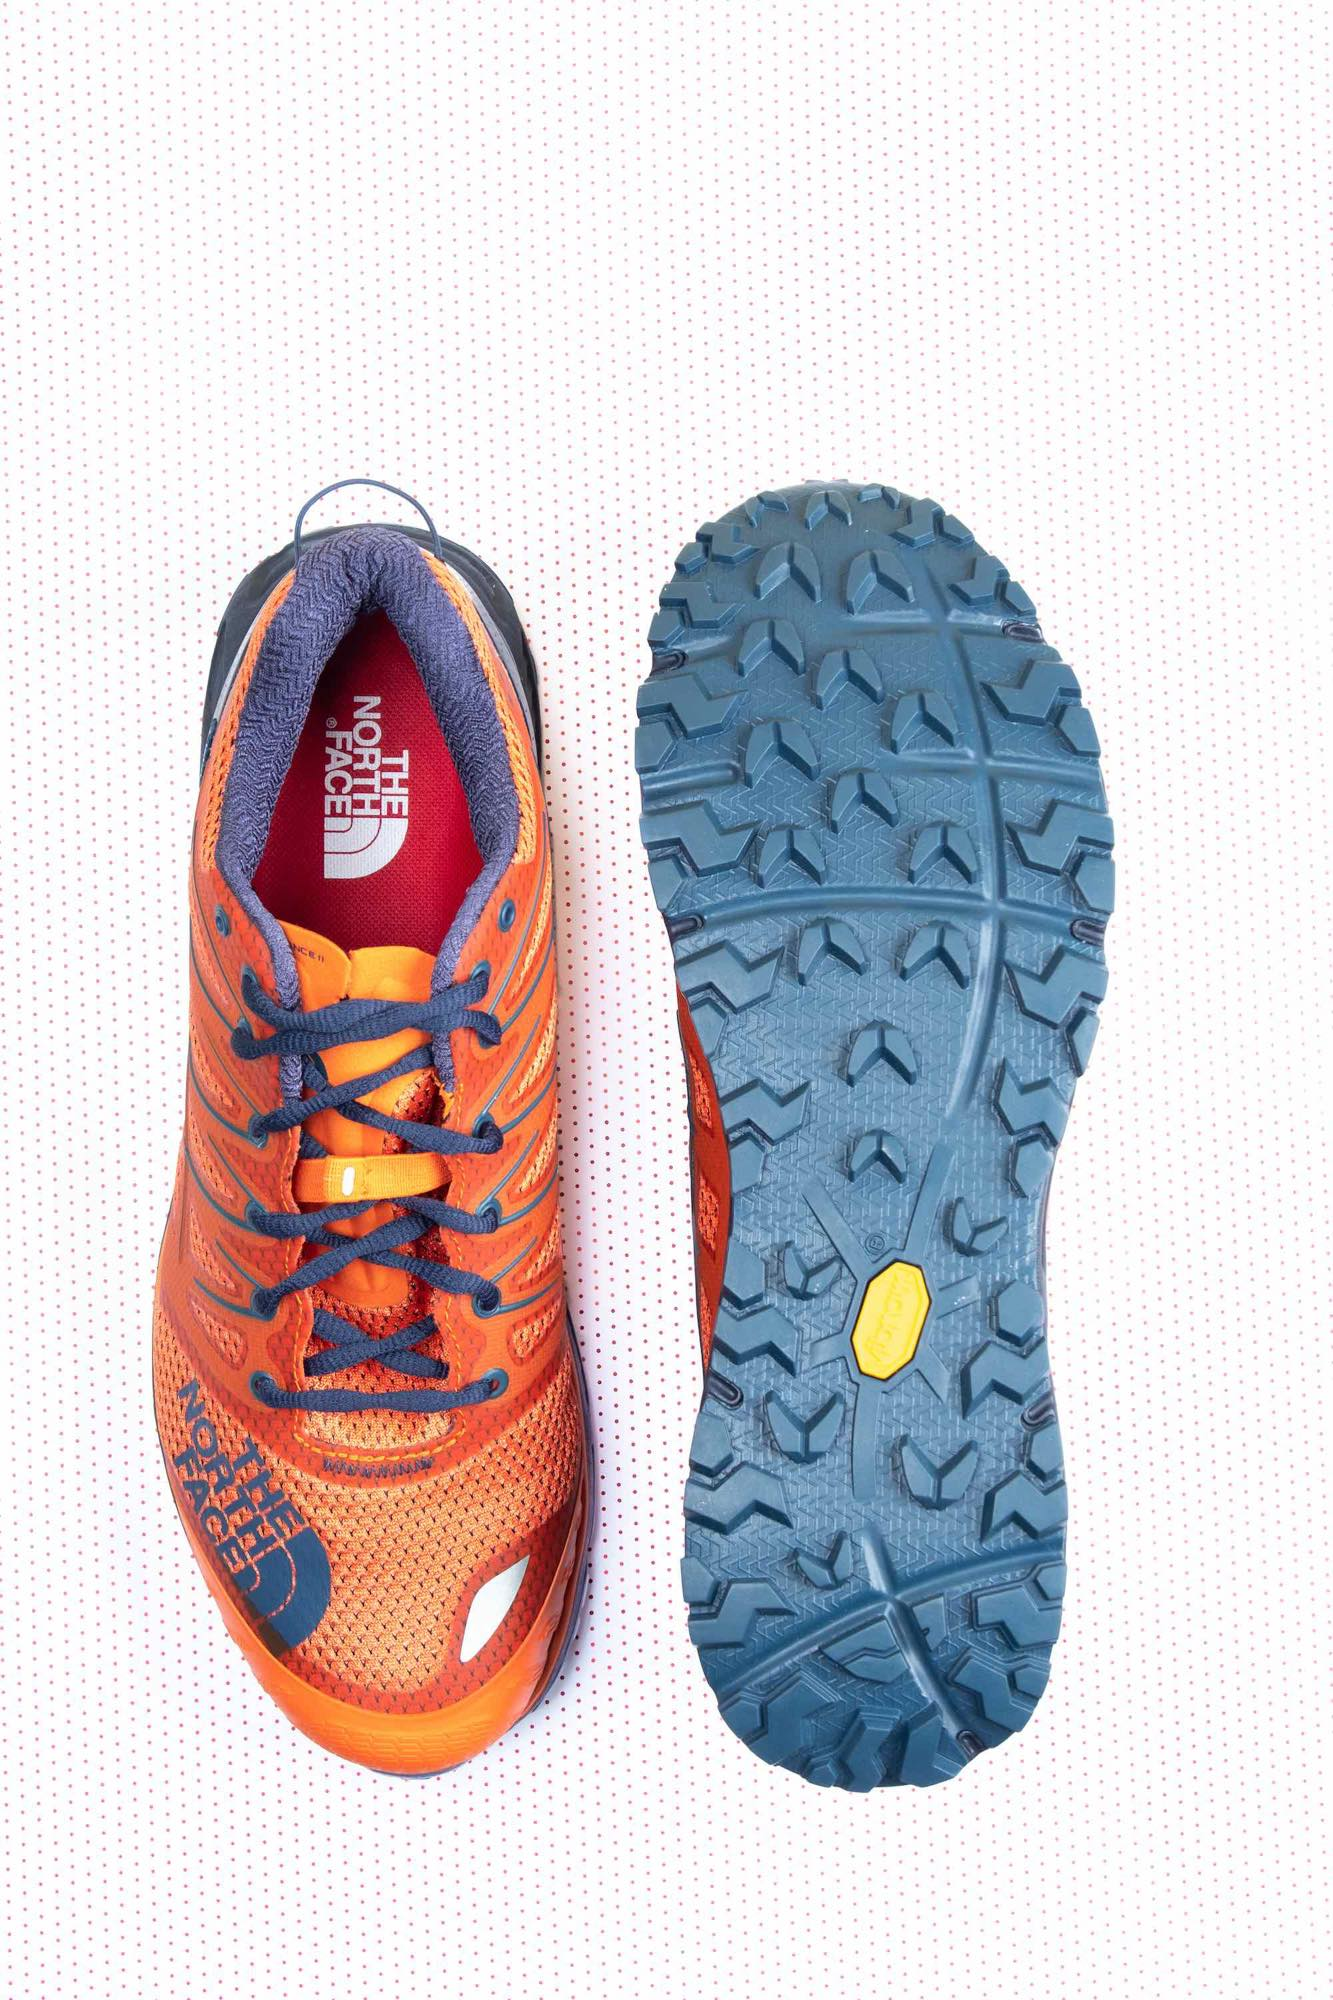 Product Photography NorthFace Shoes COCO Creative Studio Singapore 5-6